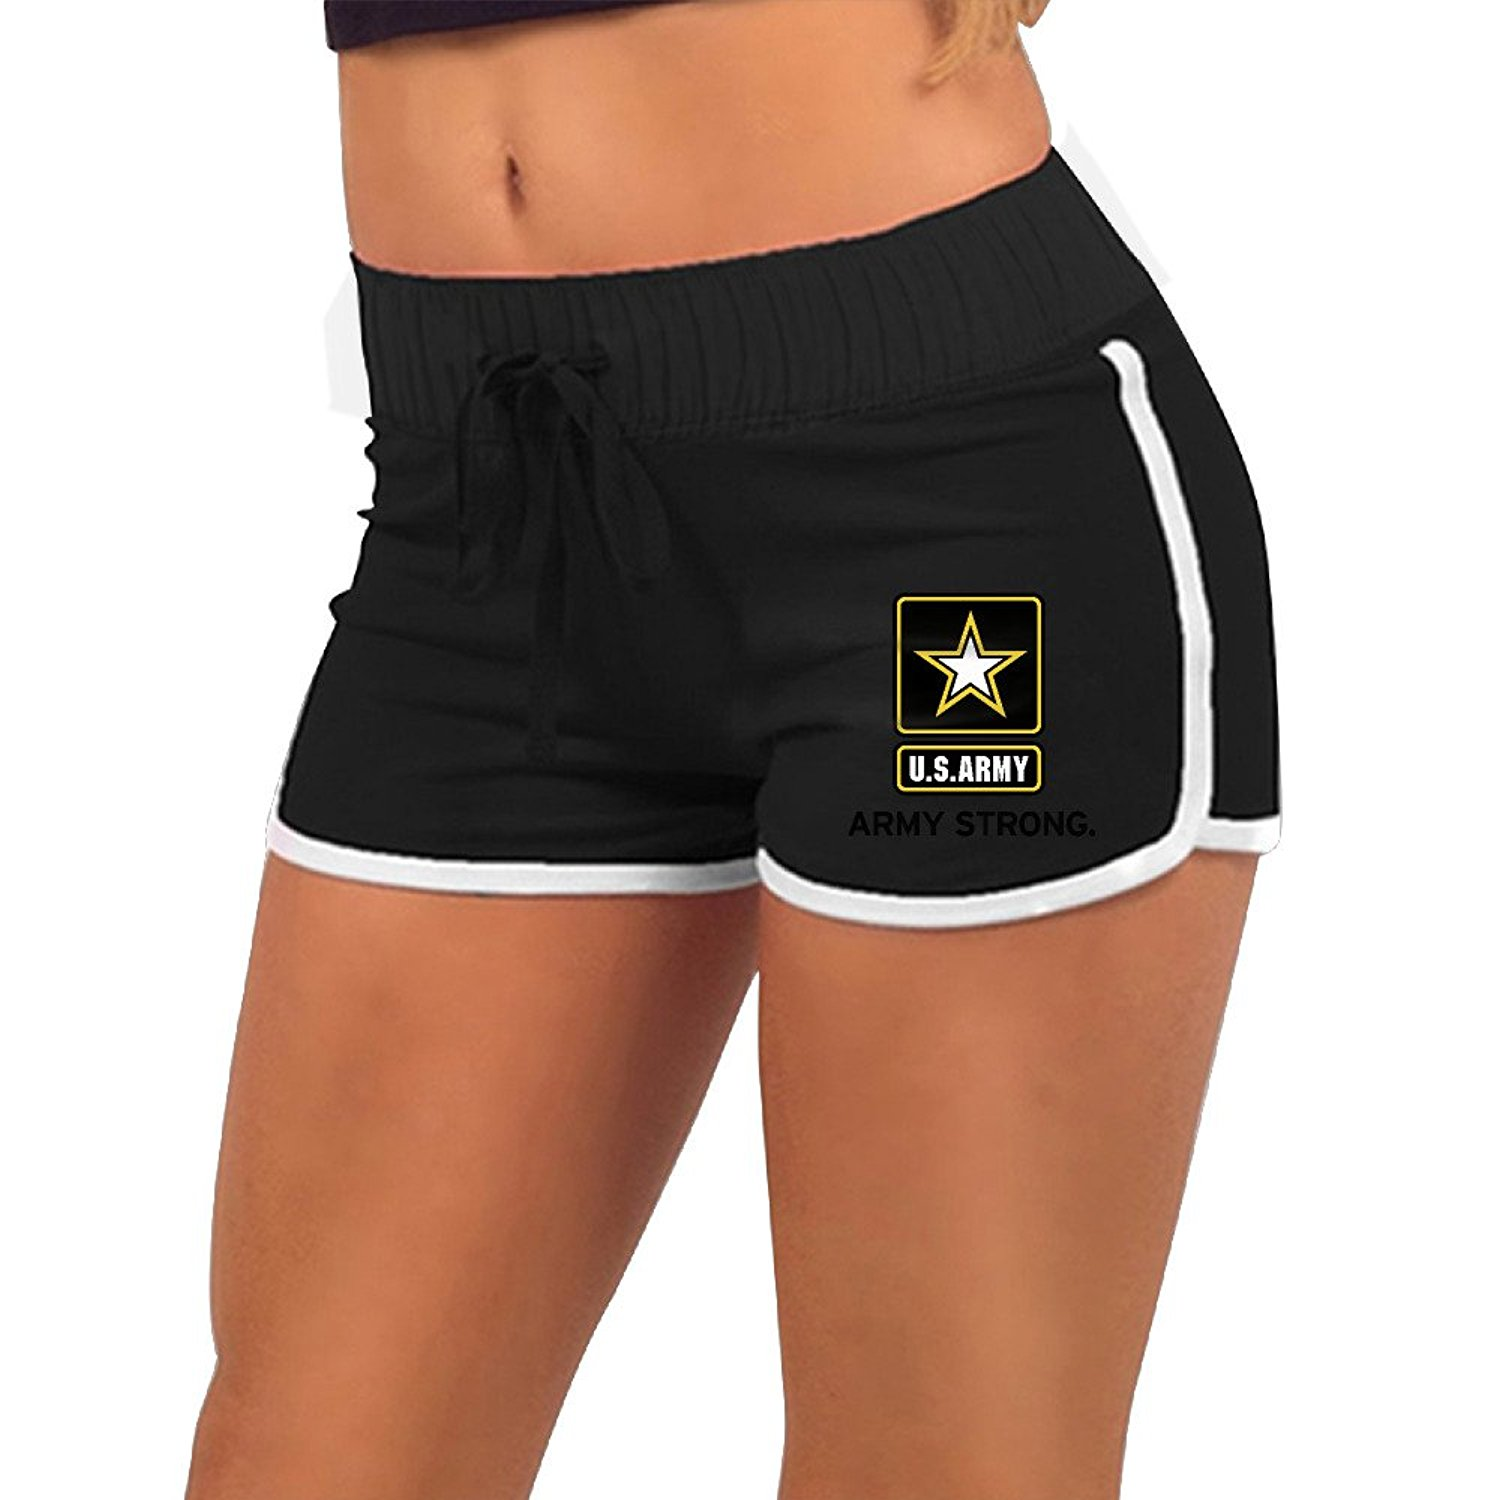 6ae32a226bf27 Get Quotations · New Summer Pants Women GirlArmy Strong US ArmySports Shorts  Gym Workout Yoga Short Women Shorts Hiphop